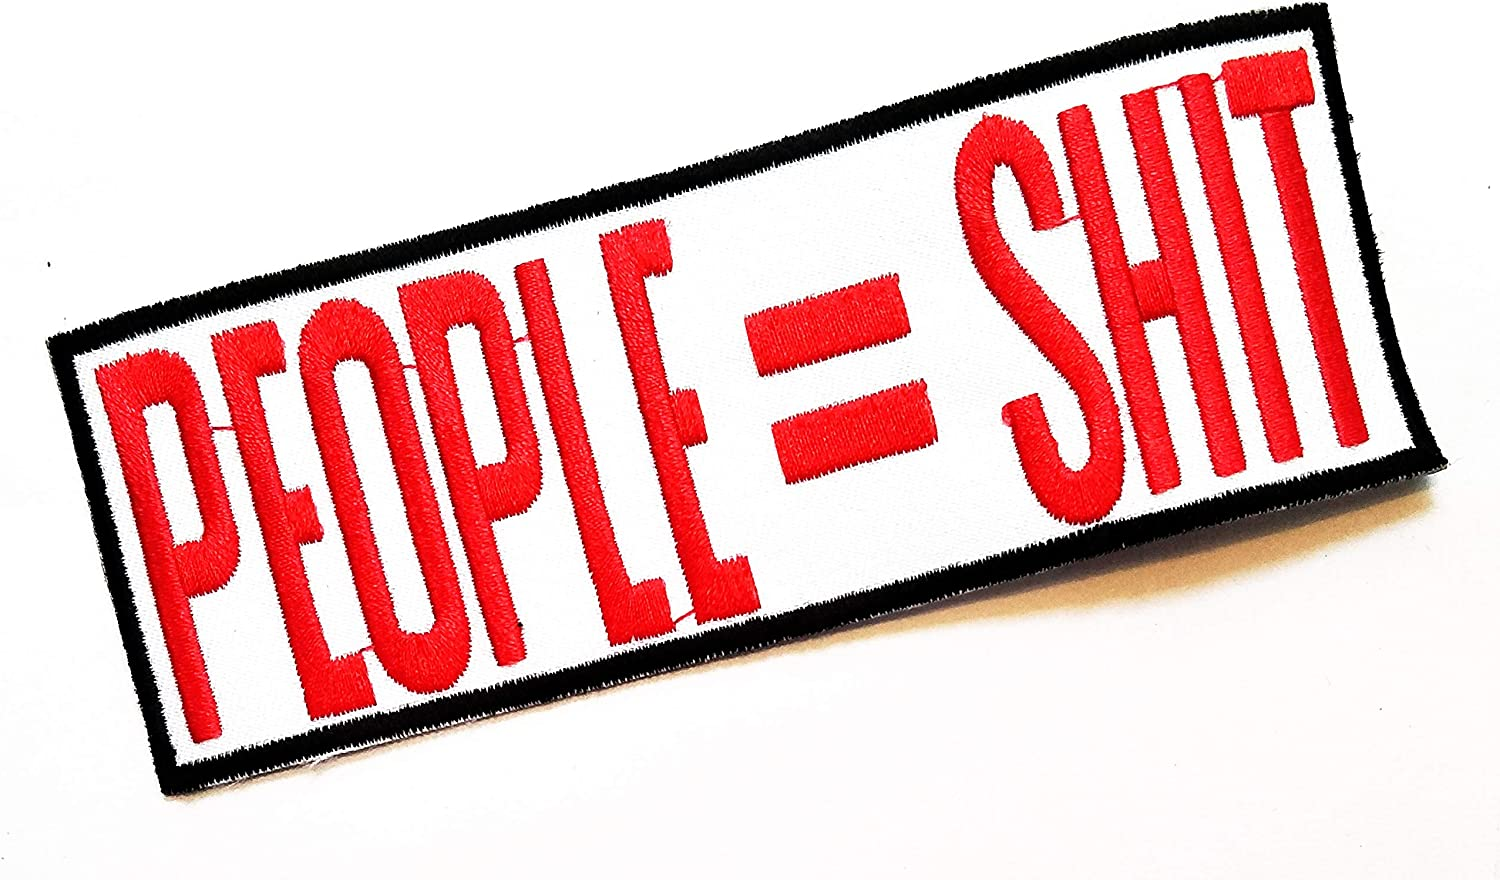 Nipitshop Patches Red Letter People Shit Words Funny Patch Funny Motorcycle Biker MC Club Patch Embroidered Iron On Patch for Clothes Backpacks T-Shirt Jeans Skirt Vests Scarf Hat Bag